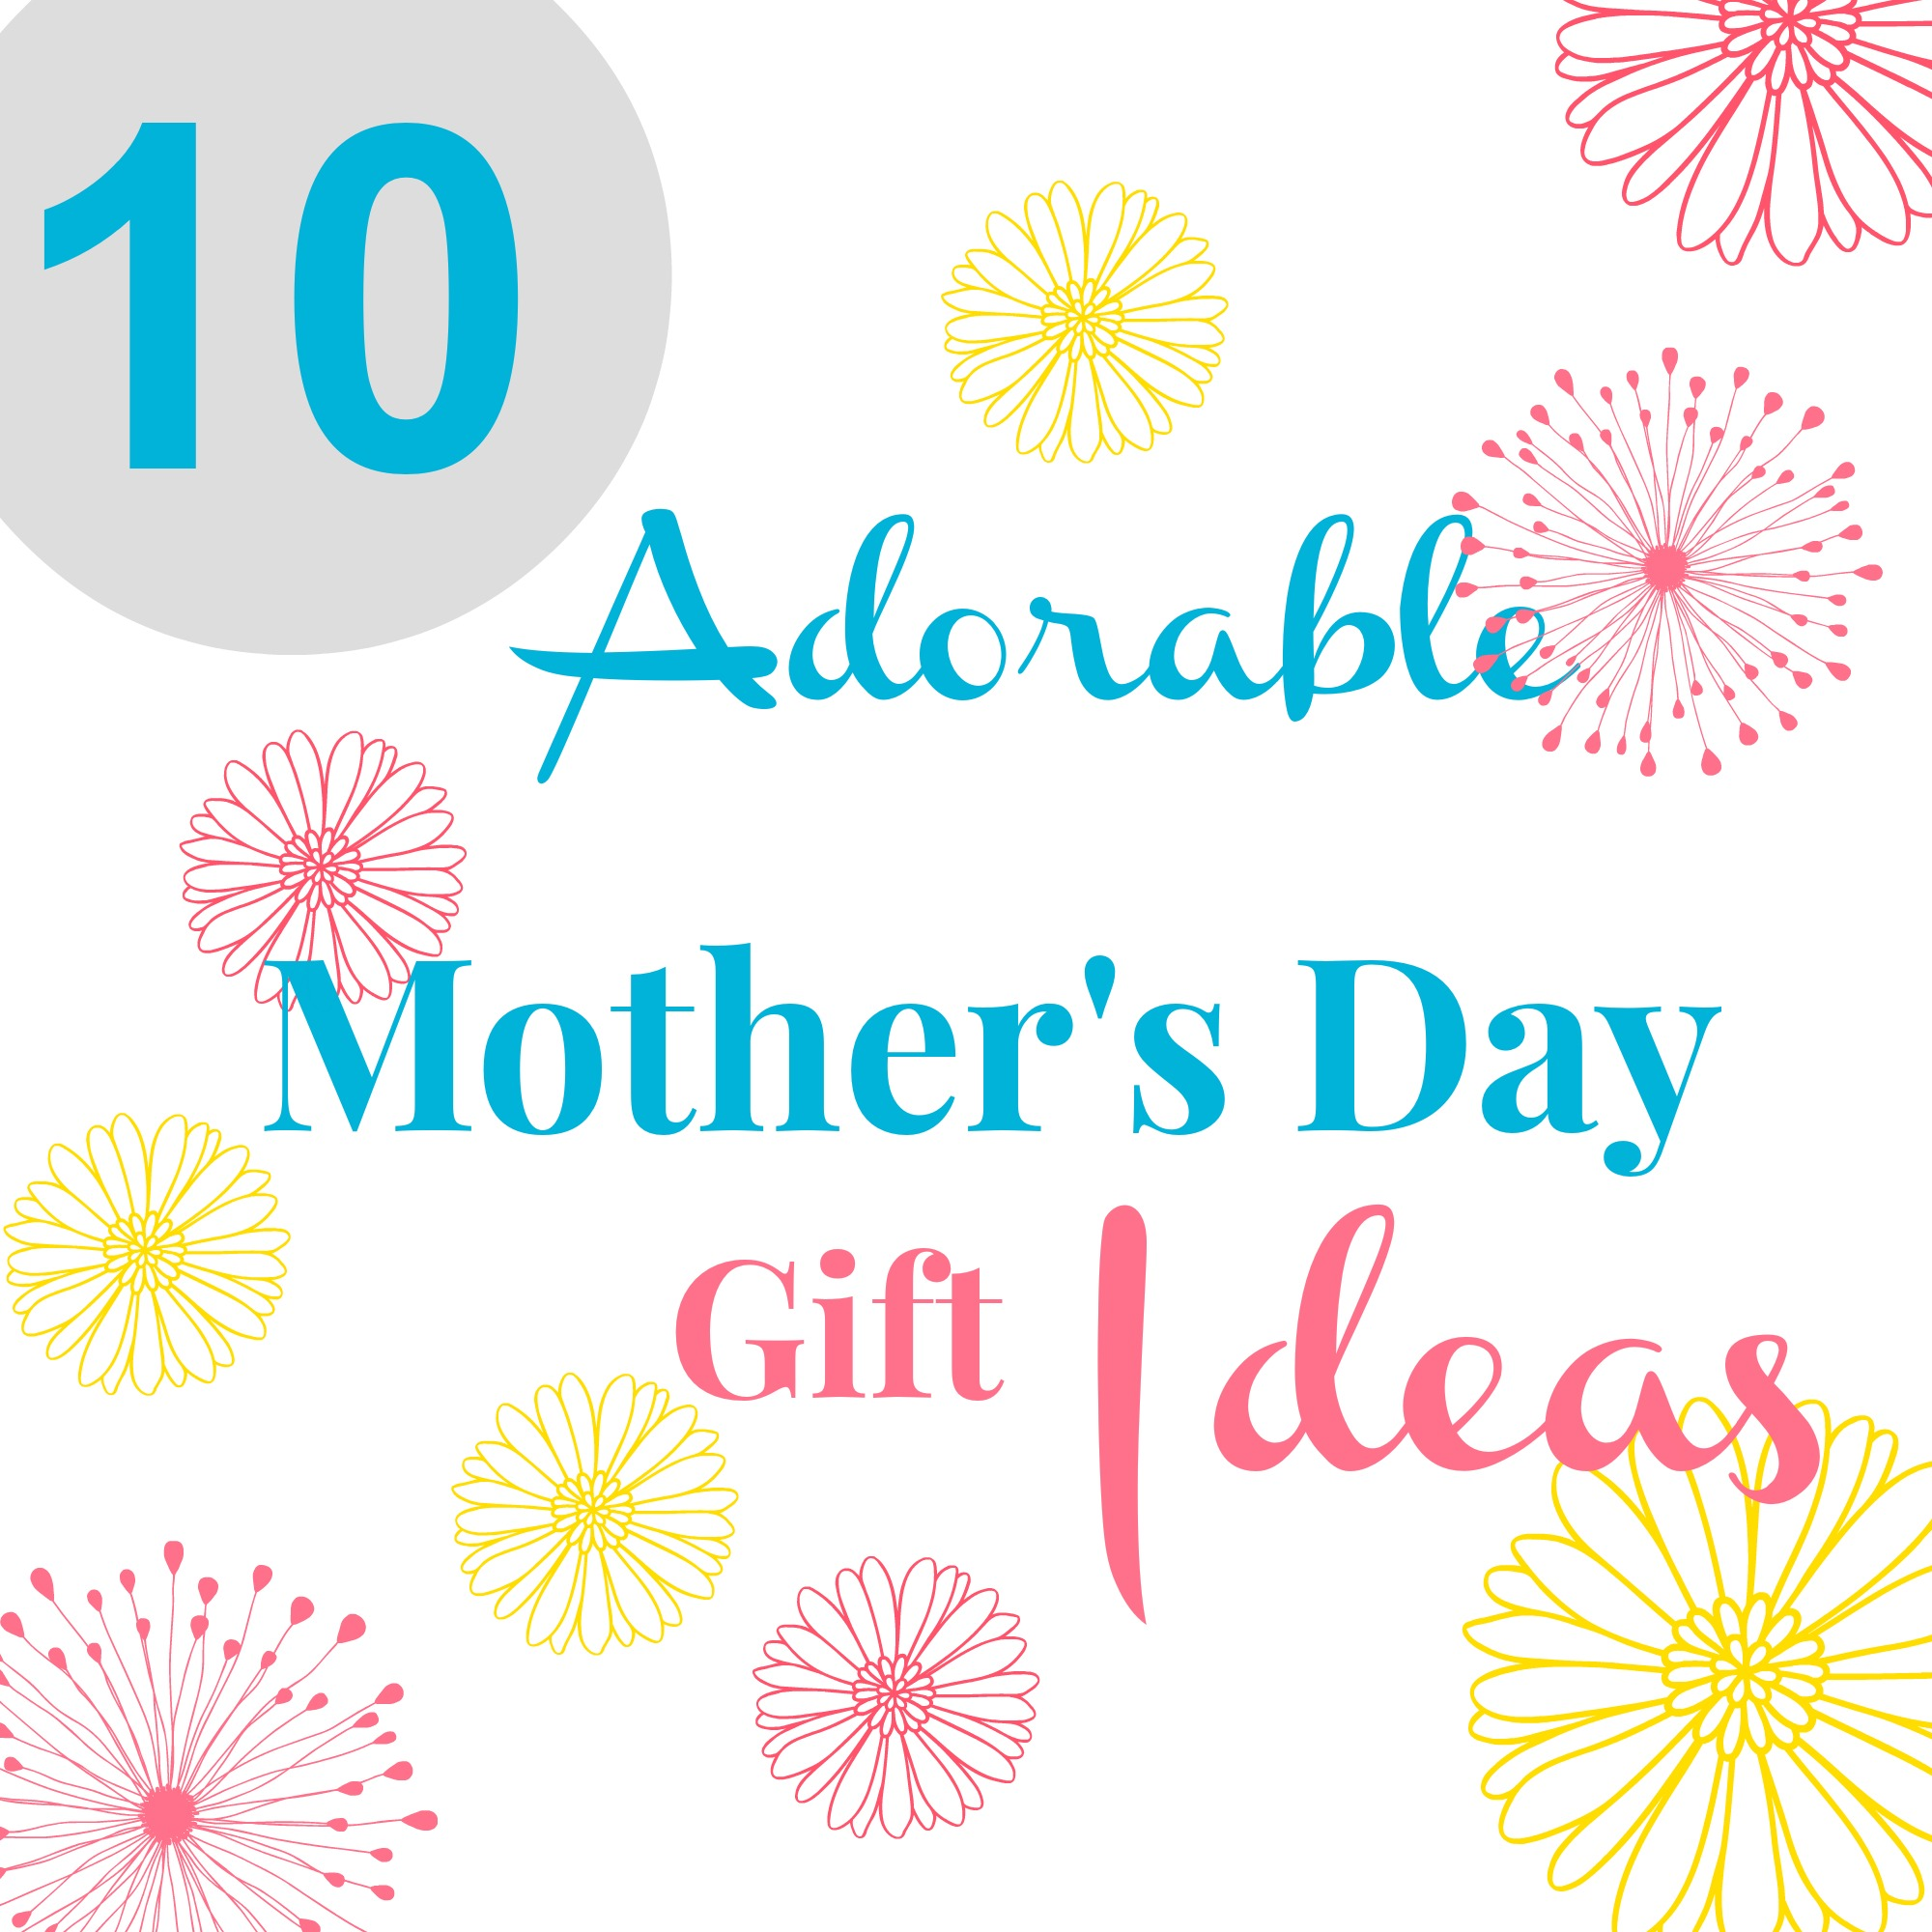 10 Adorable Mother\'s Day Gift Ideas